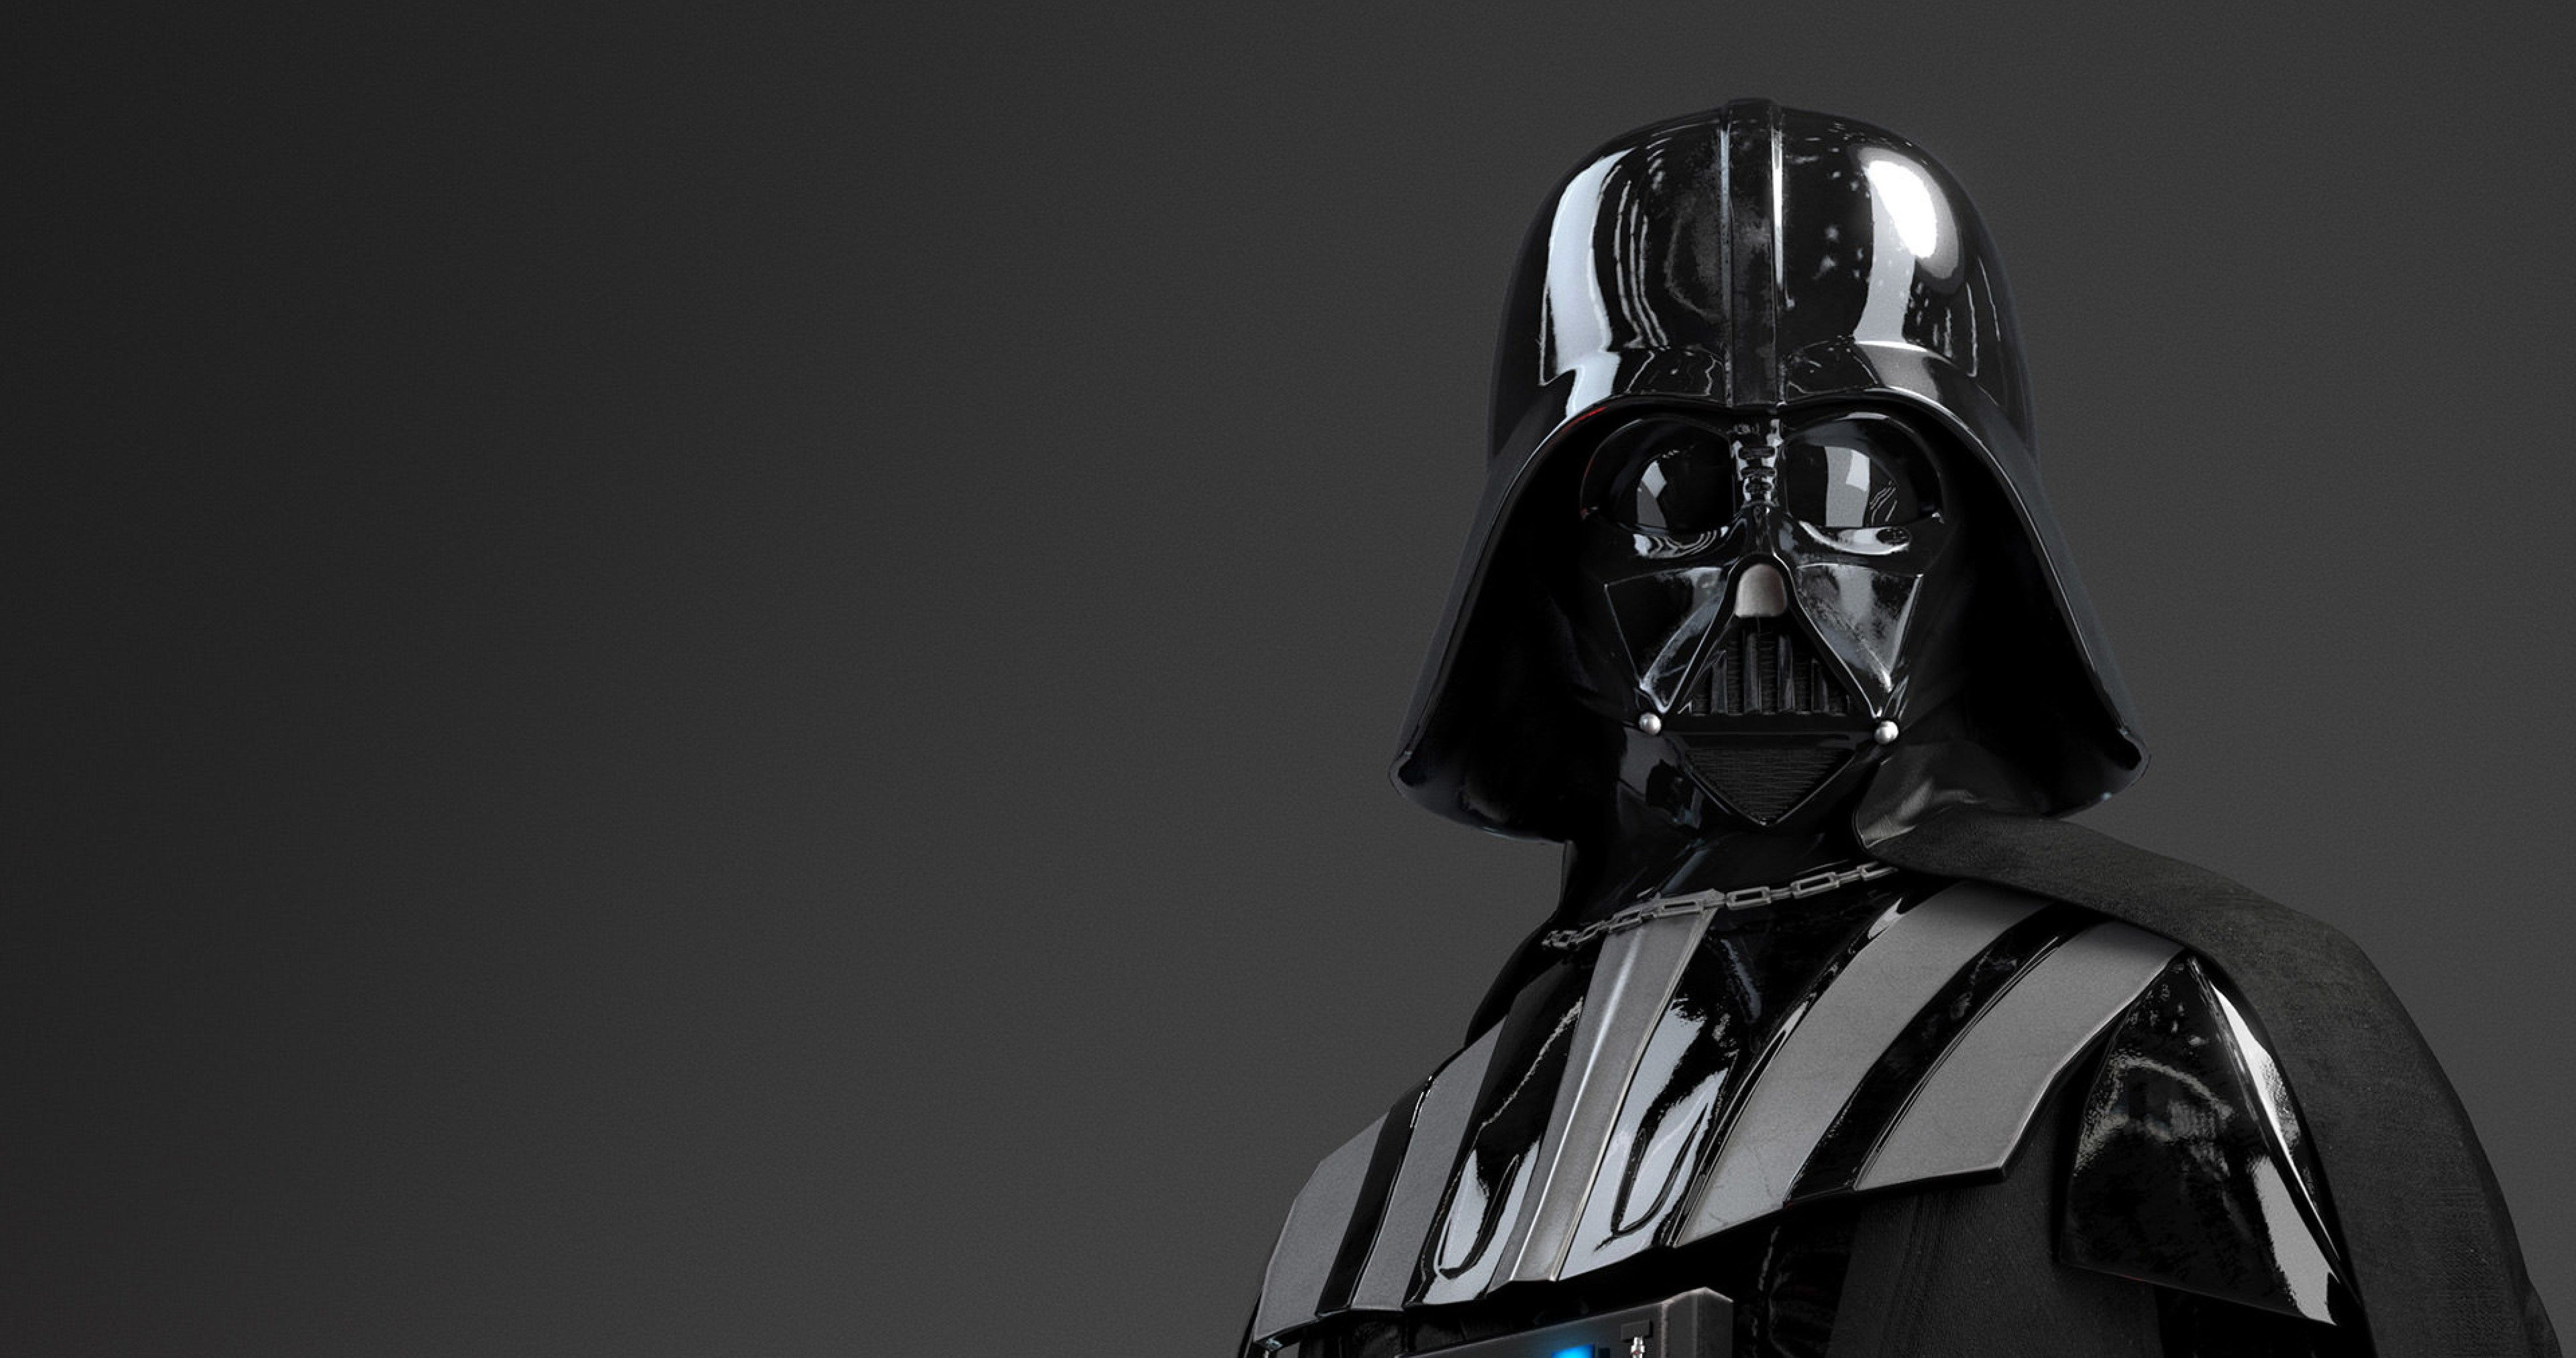 Star Wars Darth Vader 4k Ultra Hd Wallpaper Darth Vader Wallpaper Darth Vader 4k Darth Vader